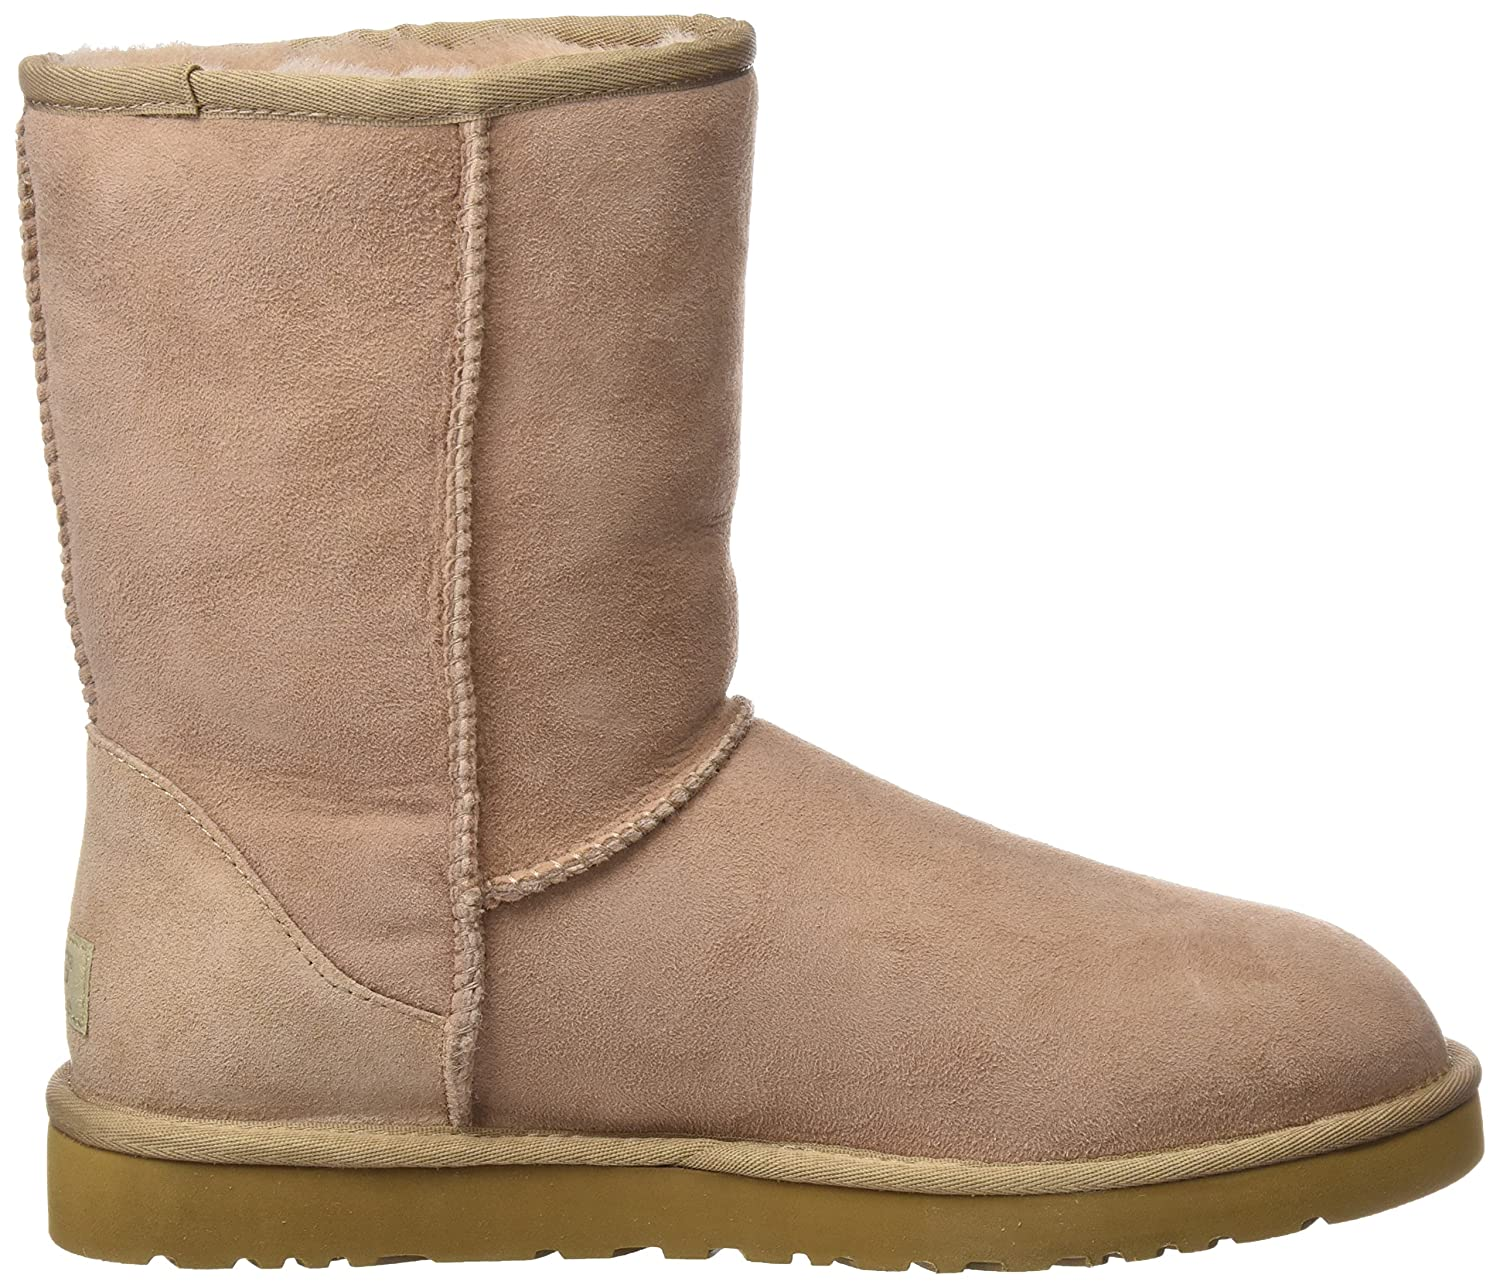 UGG Women's UGG W Classic Short Unlined Slip-On Boots Half Length:  Amazon.co.uk: Shoes & Bags